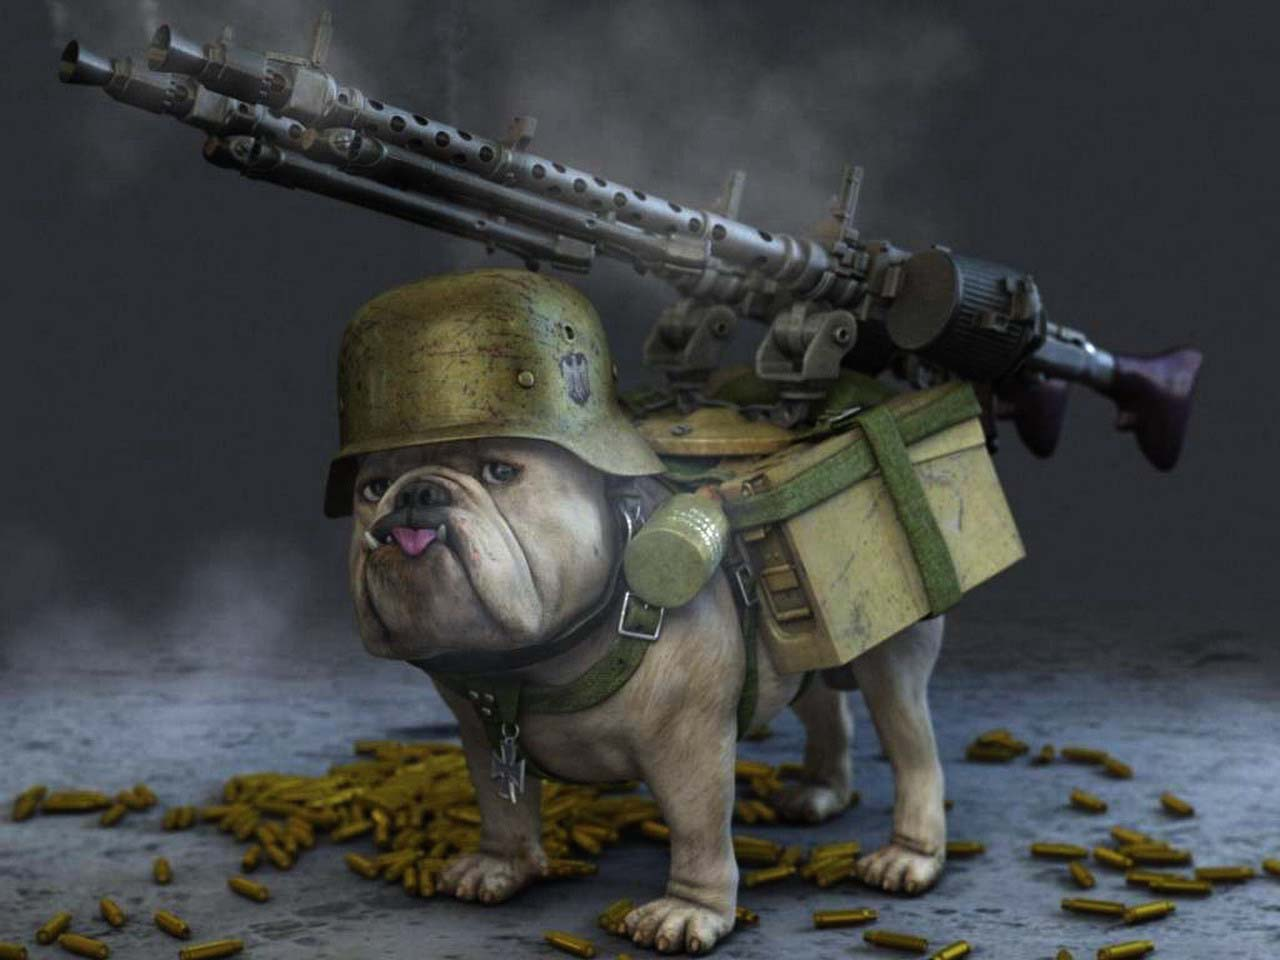 Dog Carrying Cat With Gun Image